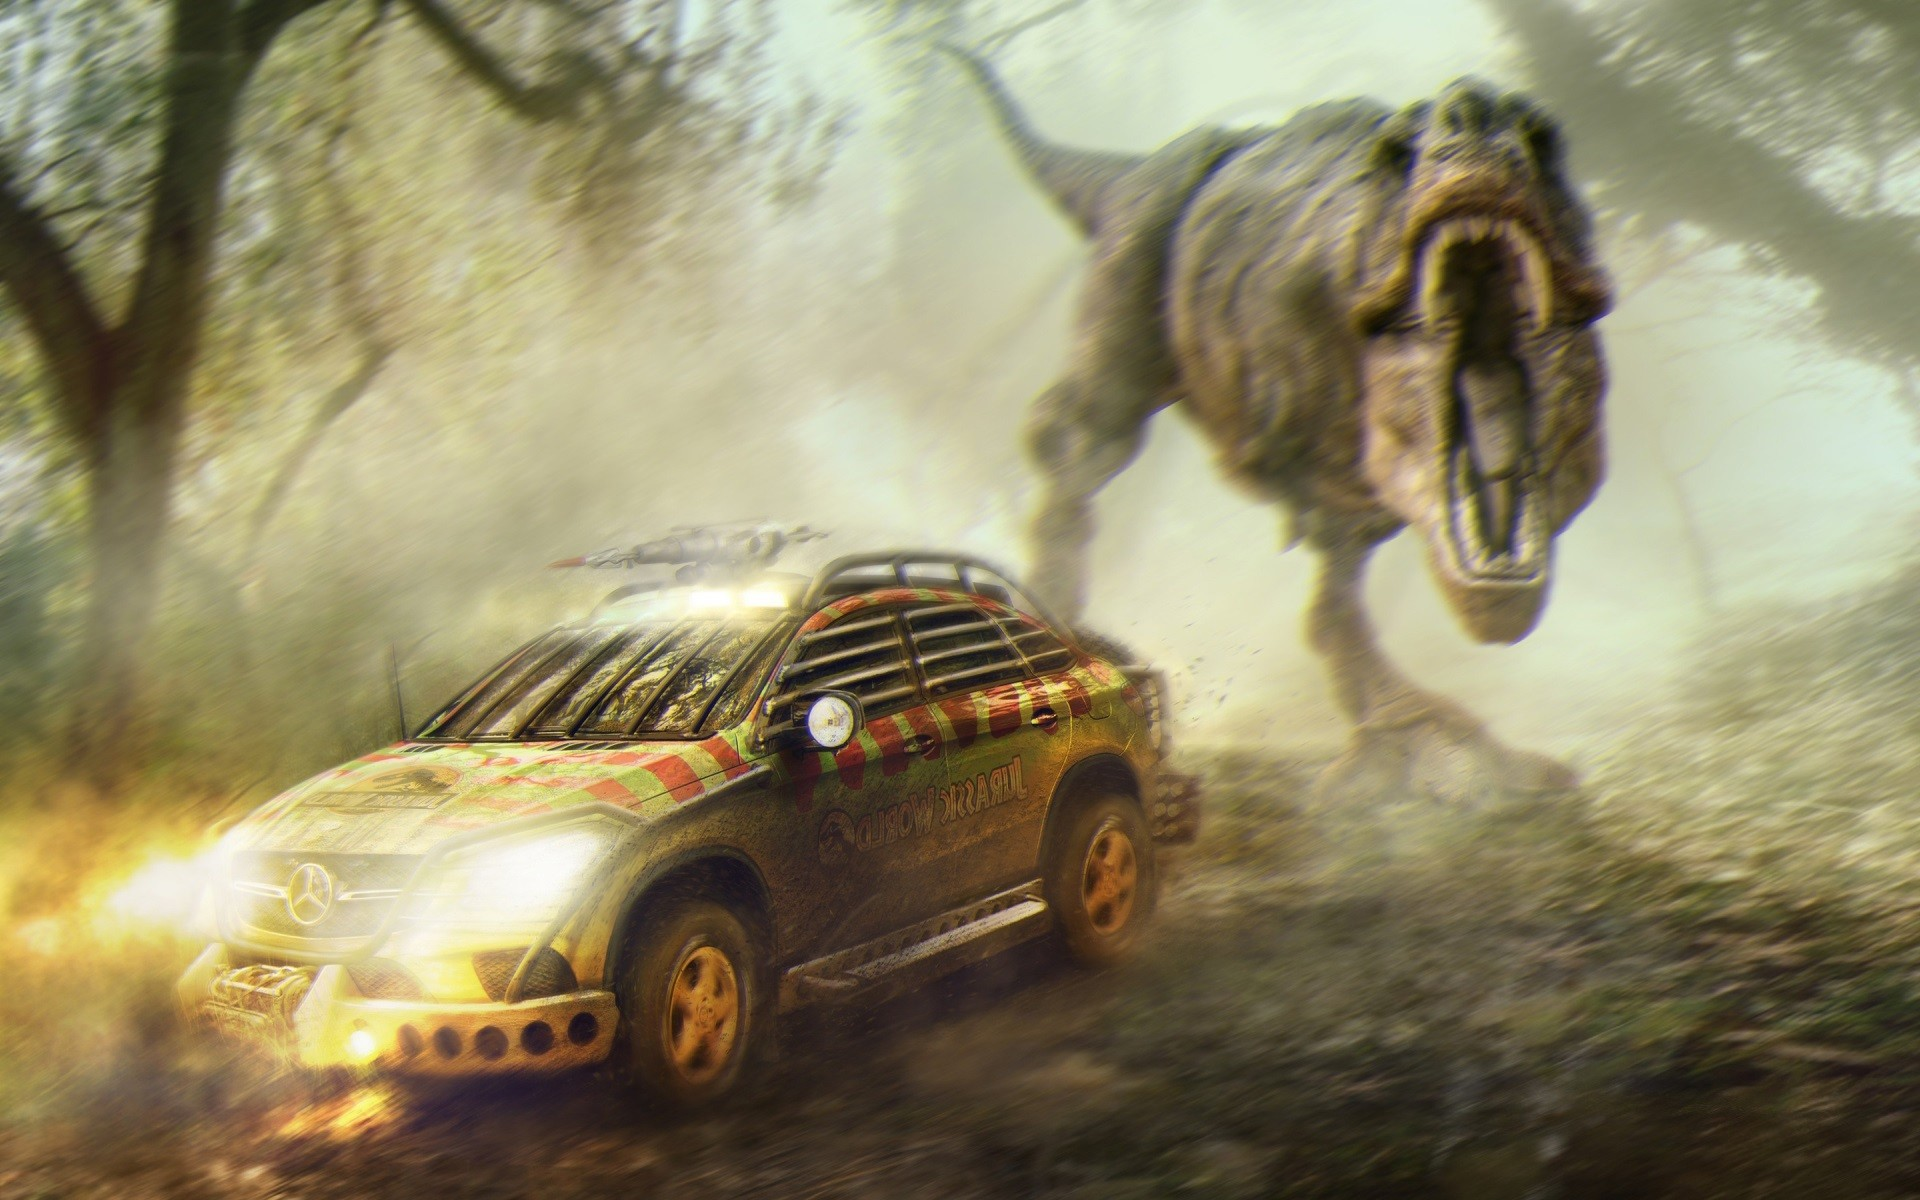 Jurassic World Wallpapers on jurassic world mercedes coupe